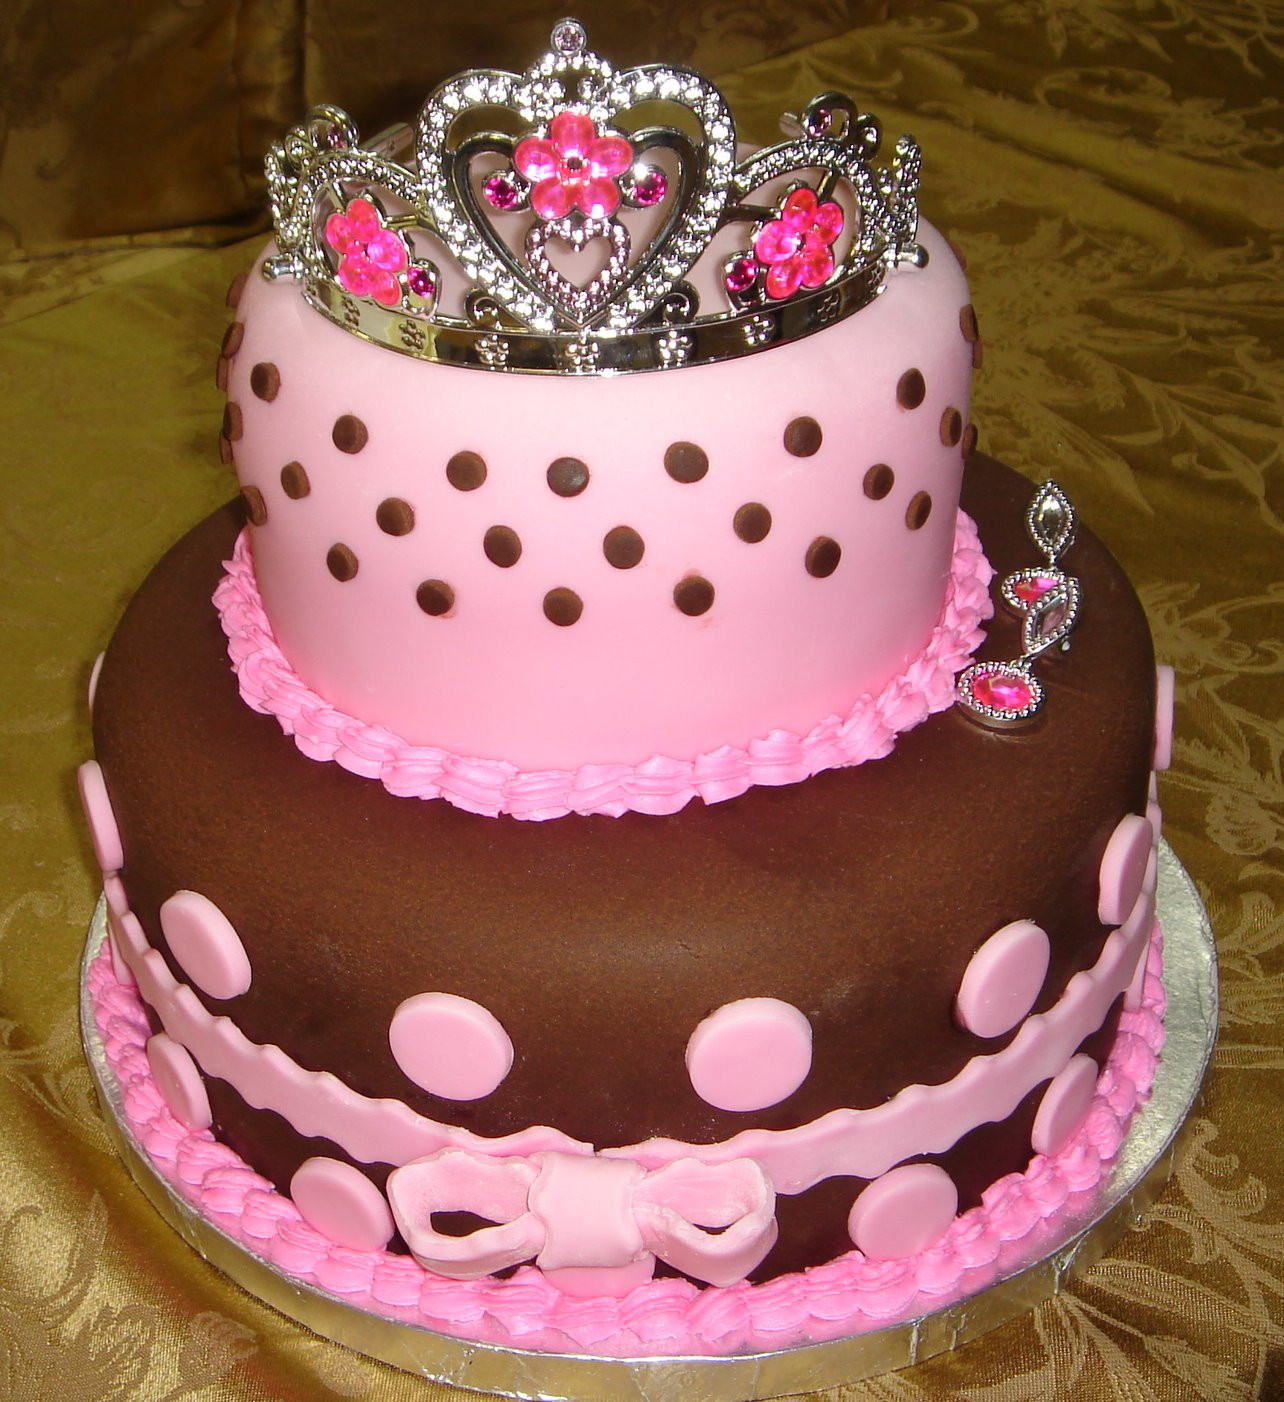 Best ideas about Girls Birthday Cake . Save or Pin cake birthday kids fondant buttercream princess castle Now.